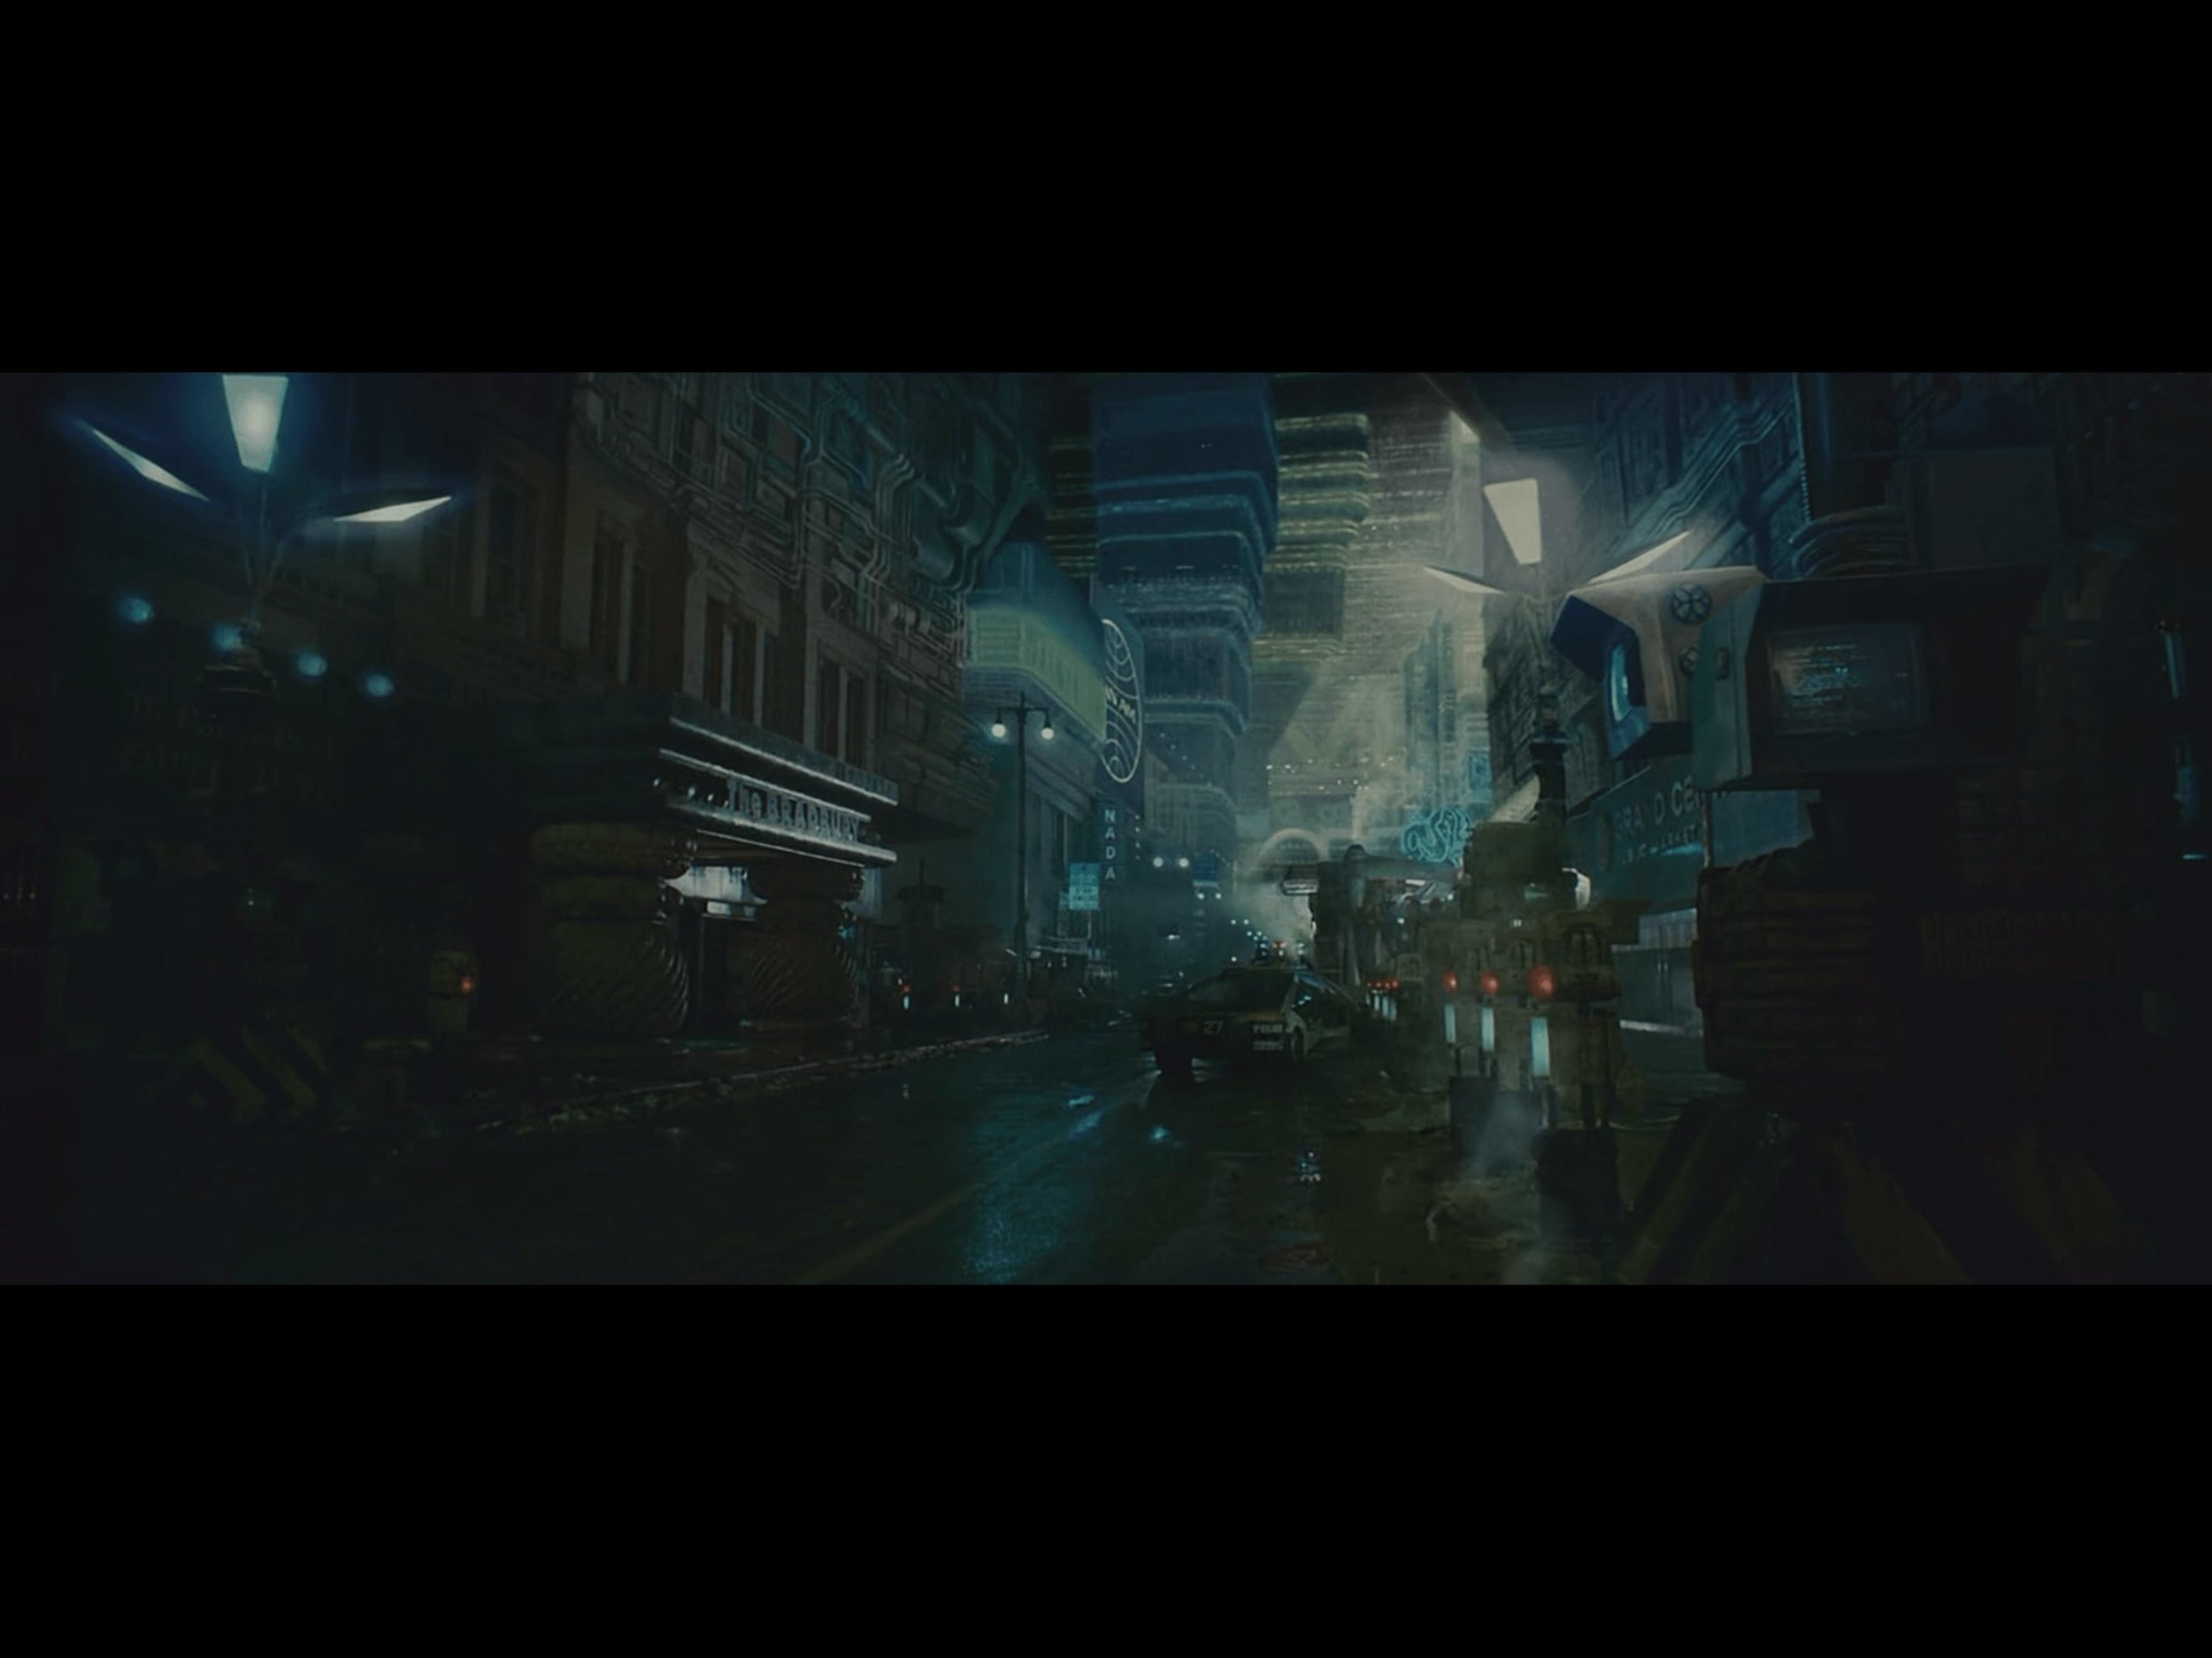 blade-runner-movie-1982-screenshot-20-min.jpg